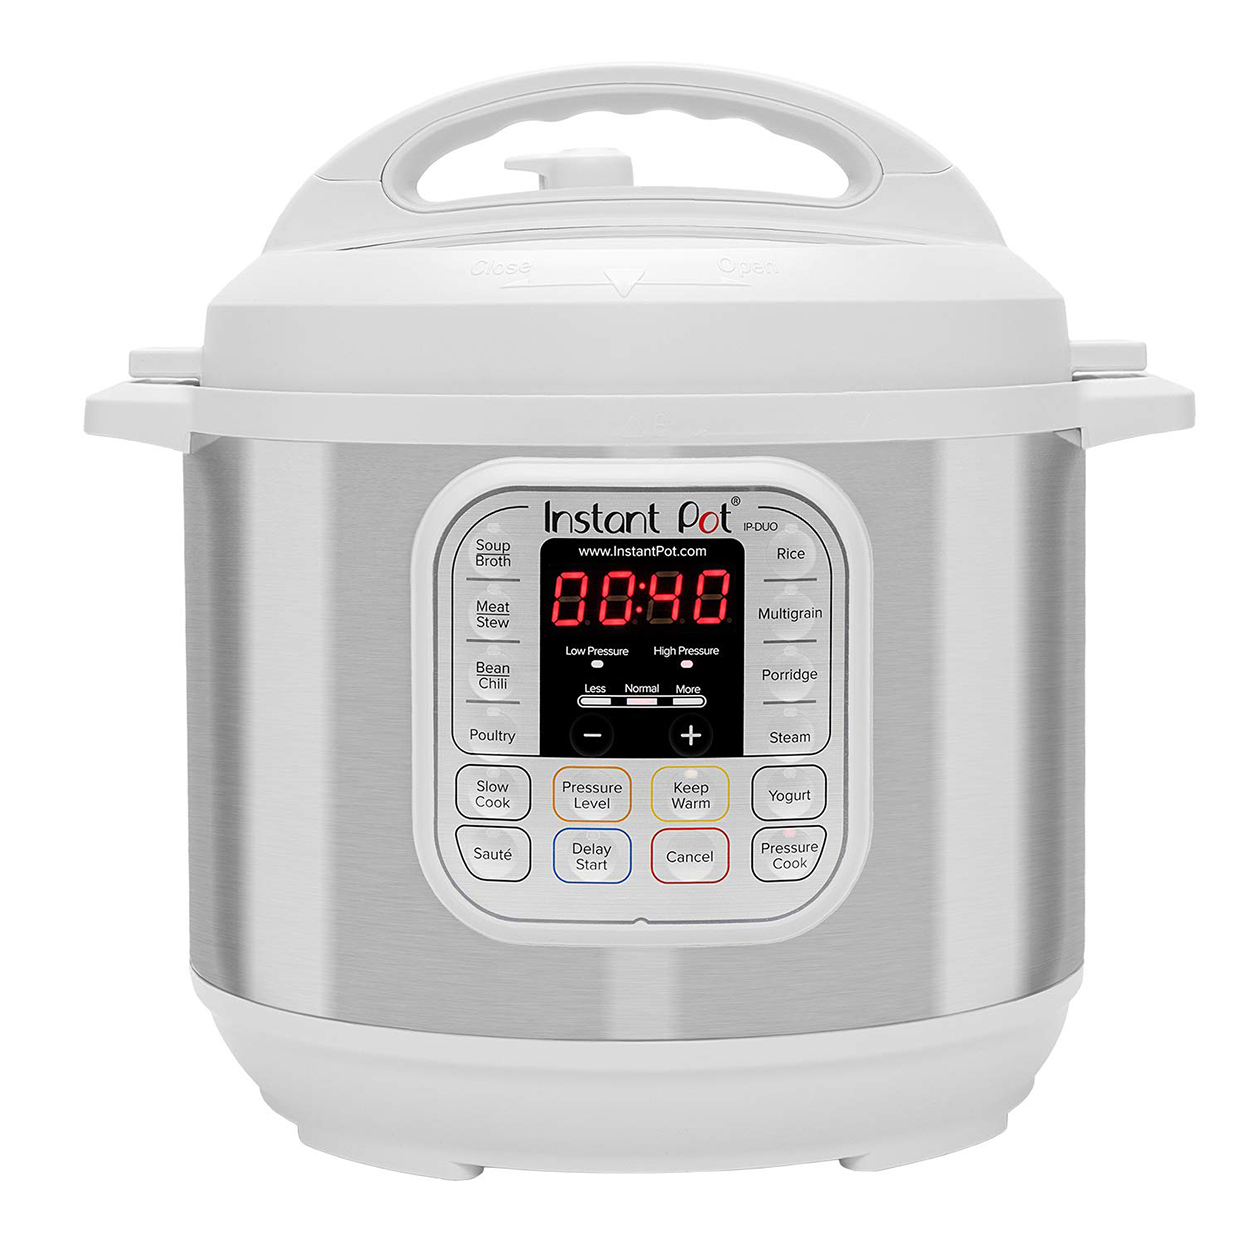 White Instant Pot on white background